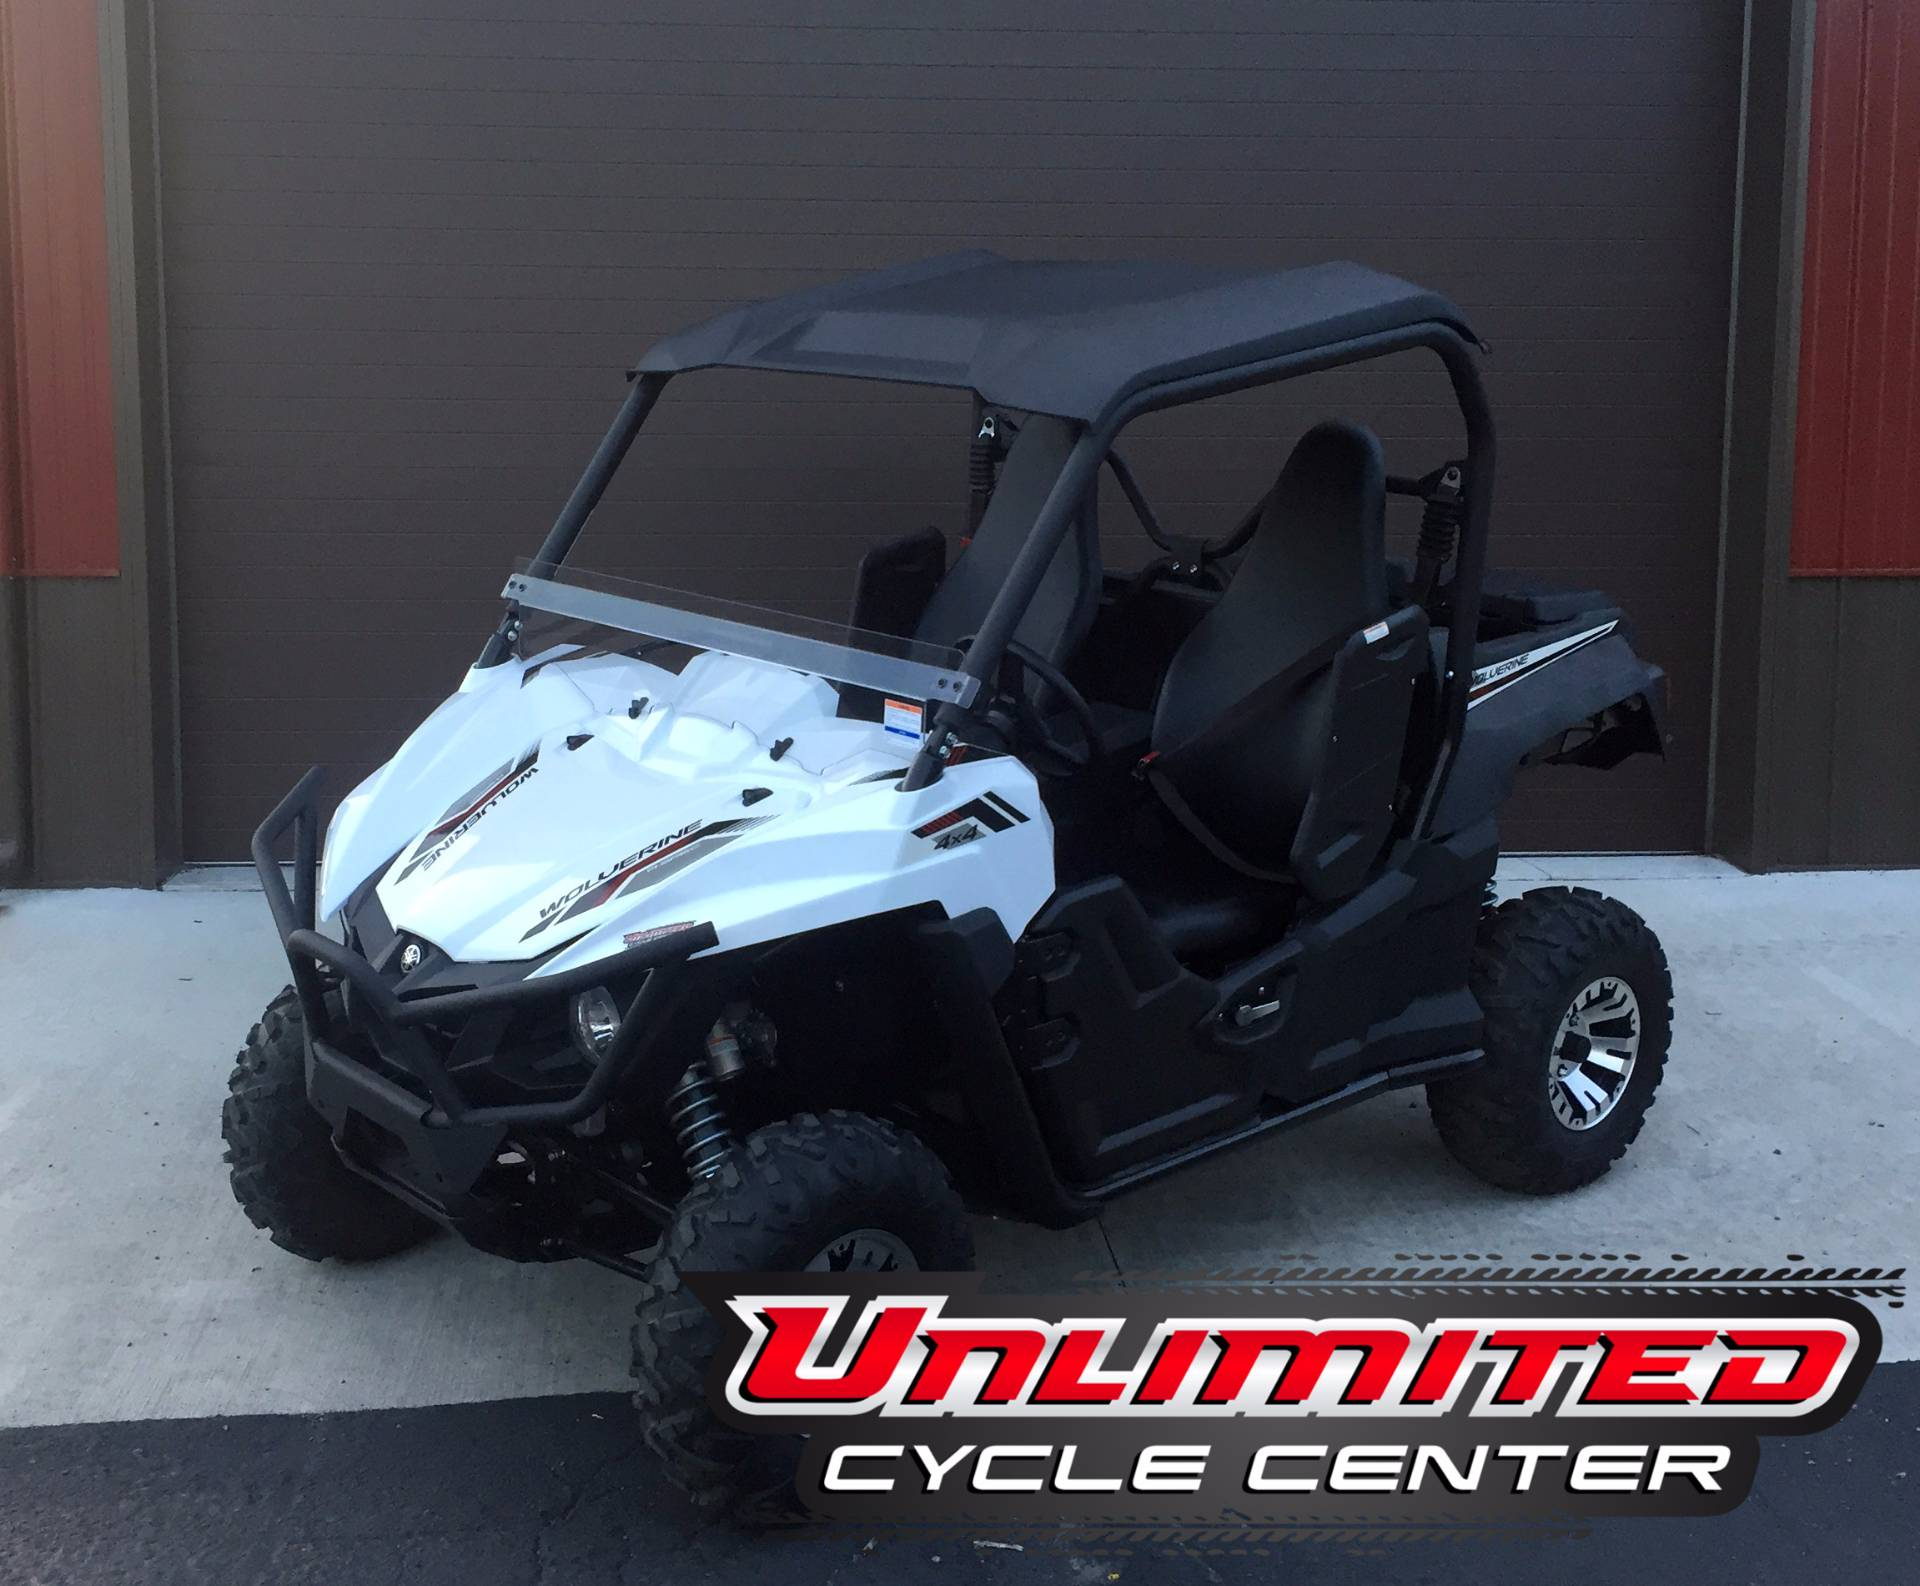 2017 Yamaha Wolverine R-Spec EPS in Tyrone, Pennsylvania